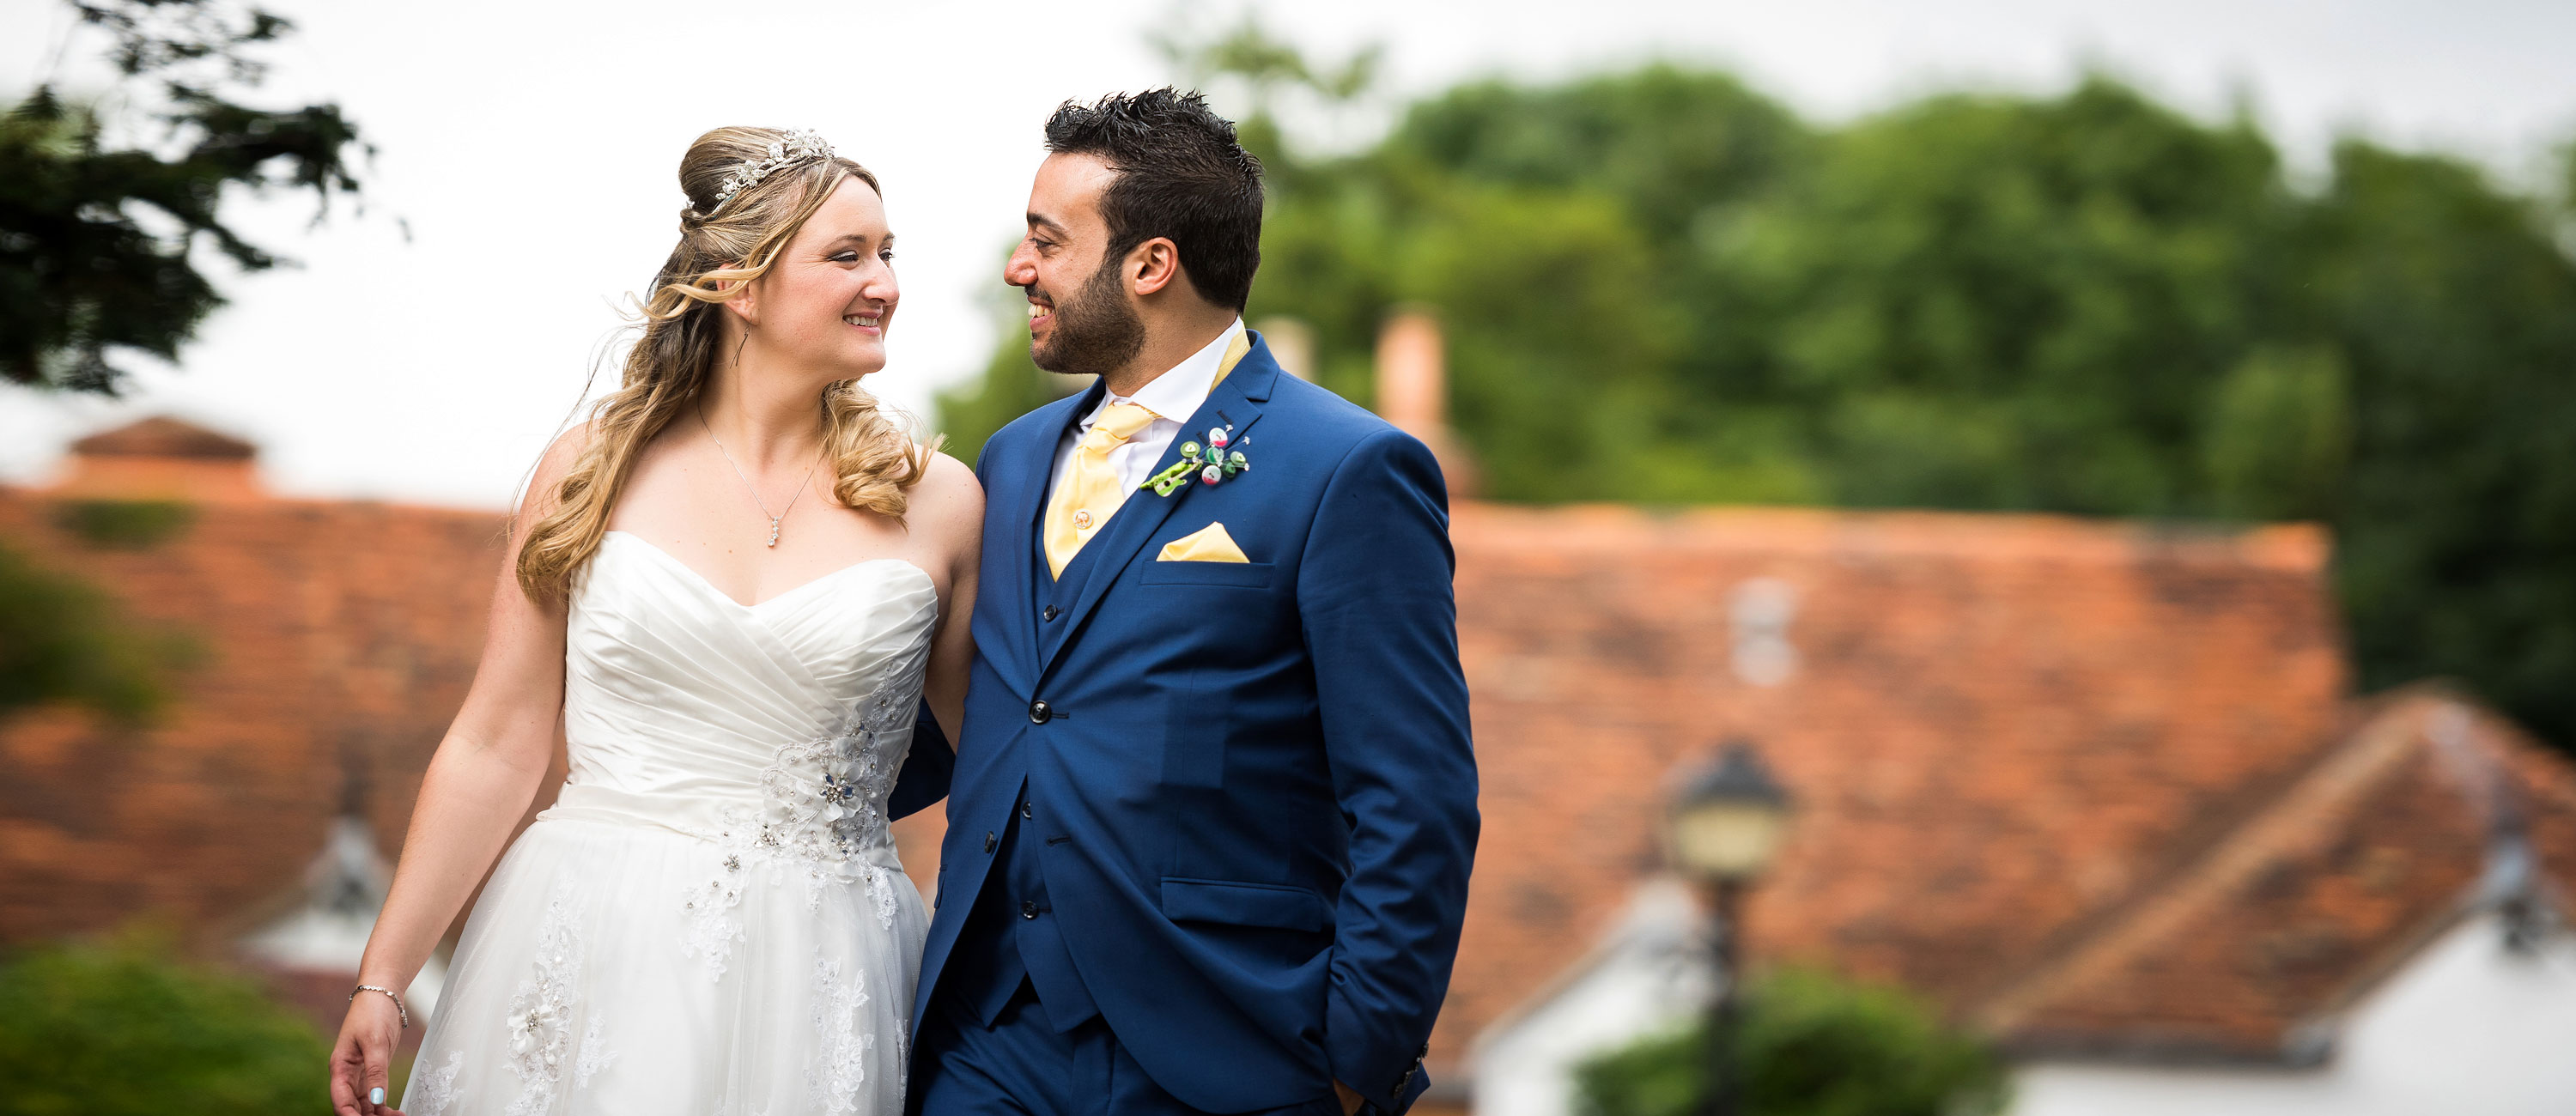 recommended wedding photographer barns hotel bedford